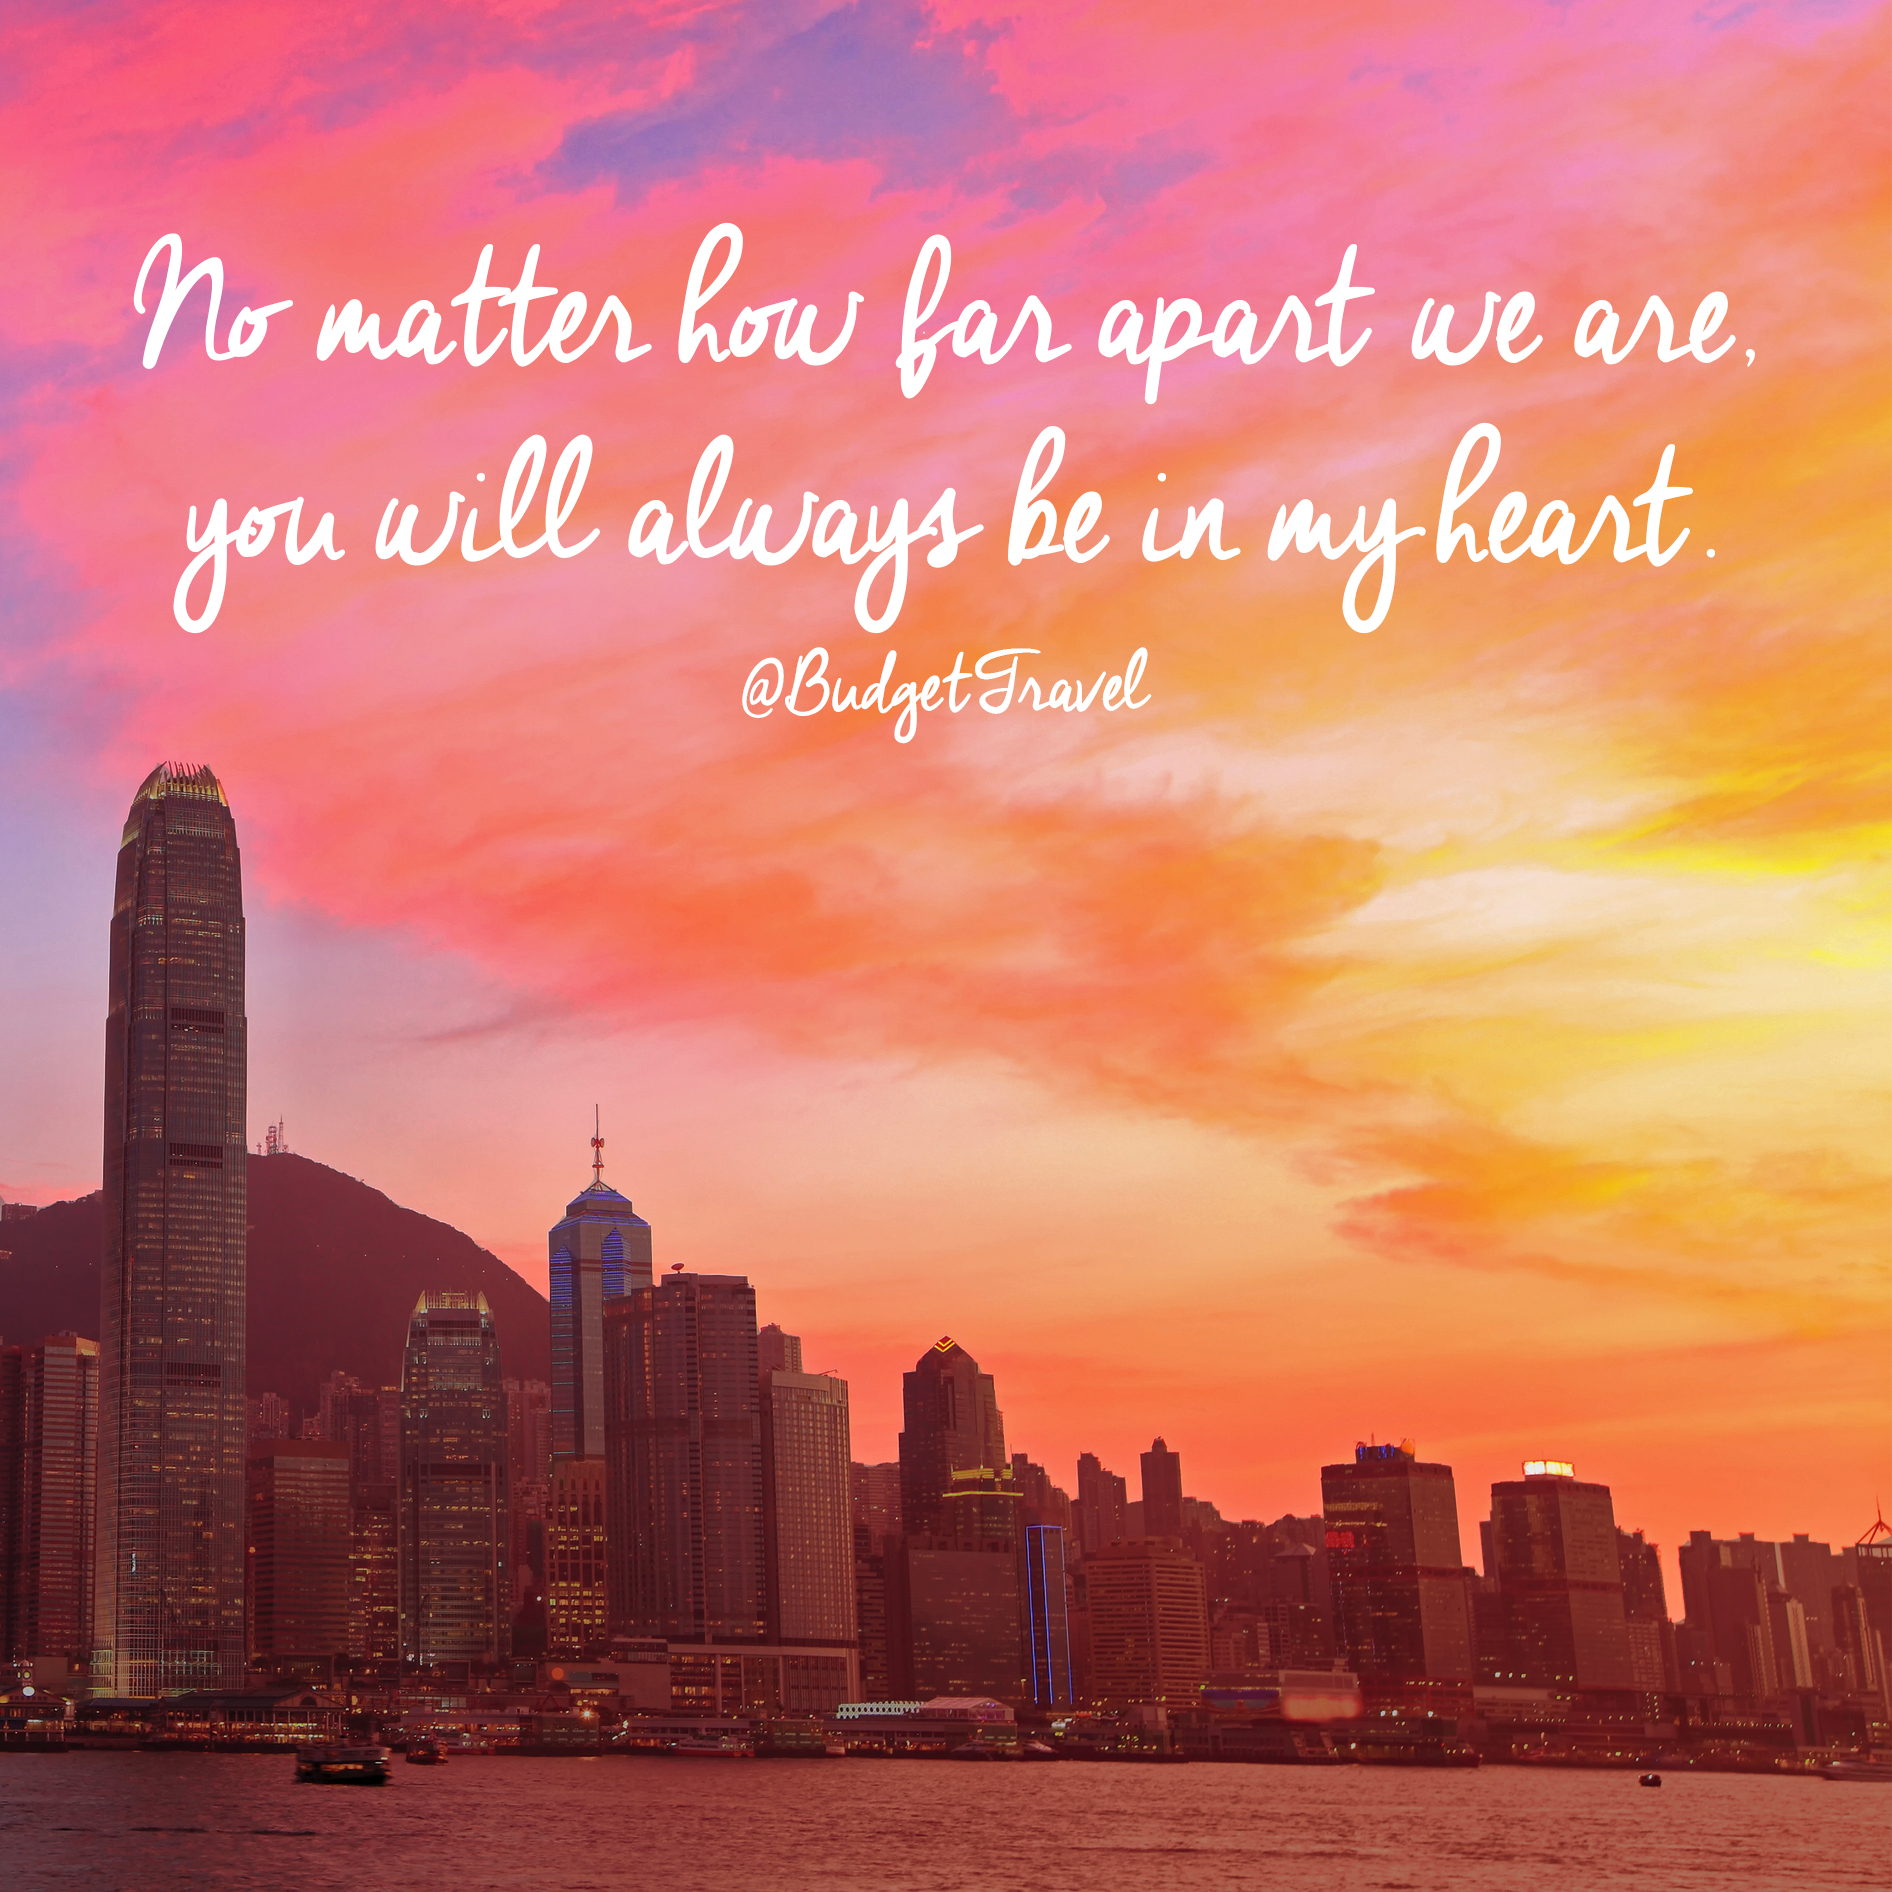 no-matter-how-far-travel-quote-472015-19149_original